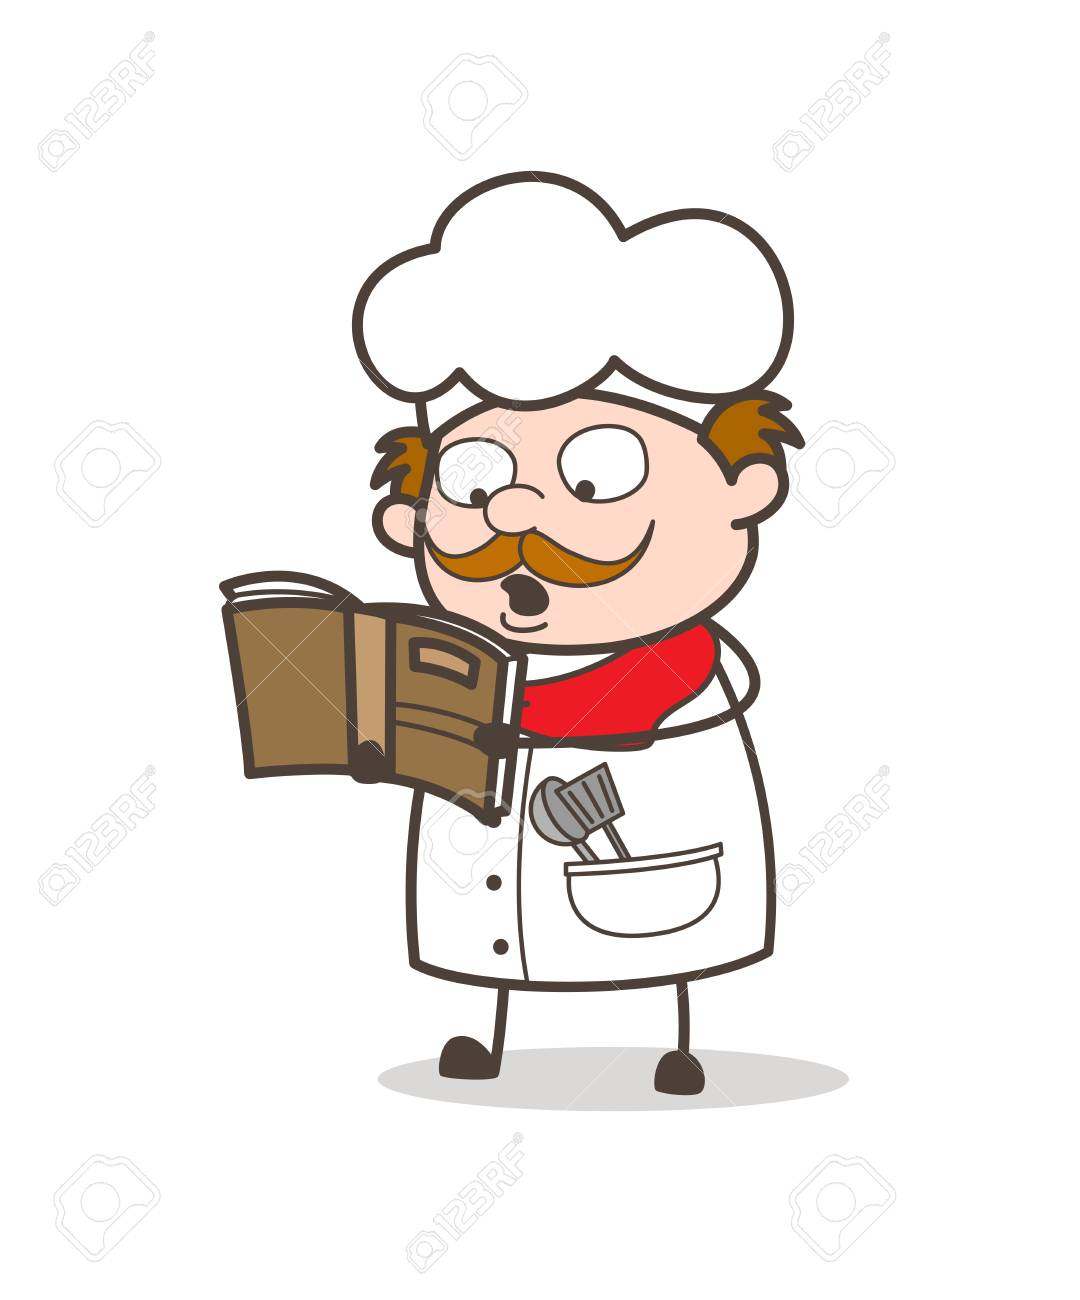 Cartoon Chef Reading Recipe Book For Cooking Royalty Free Cliparts ...